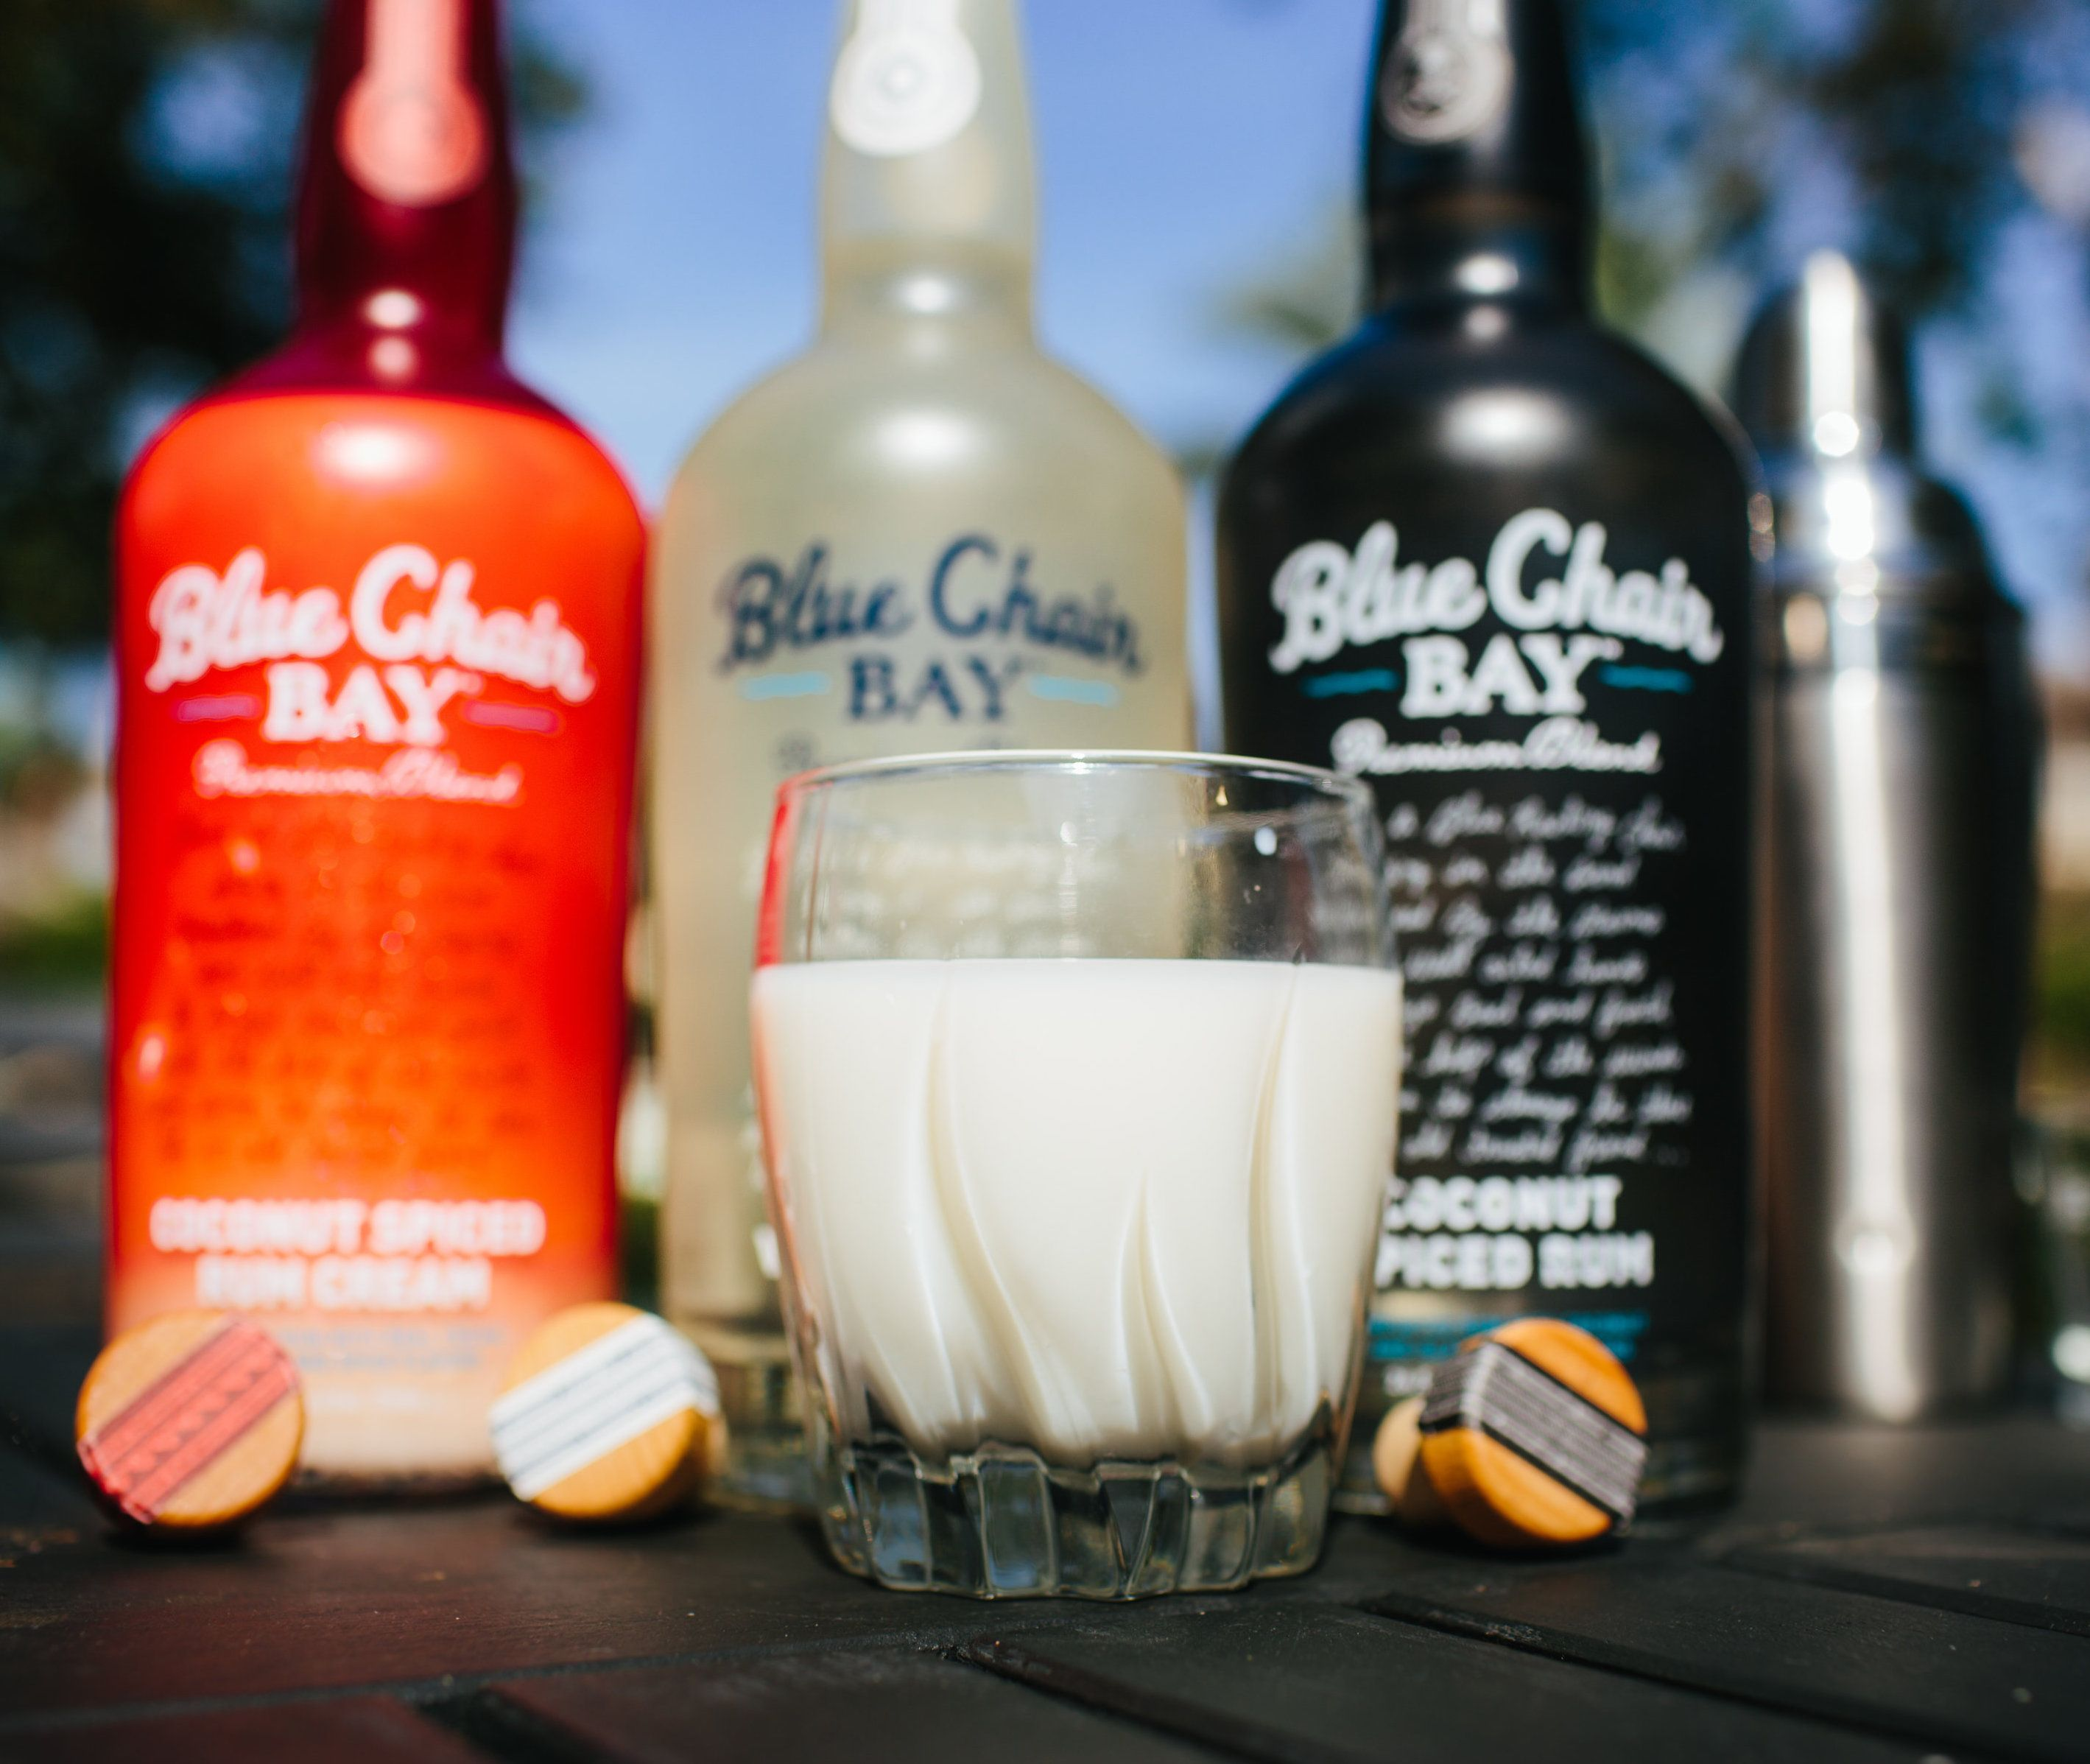 CHRISTMAS IN JULY COCKTAIL // 2 Oz. Blue Chair Bay Coconut Spiced Rum Cream